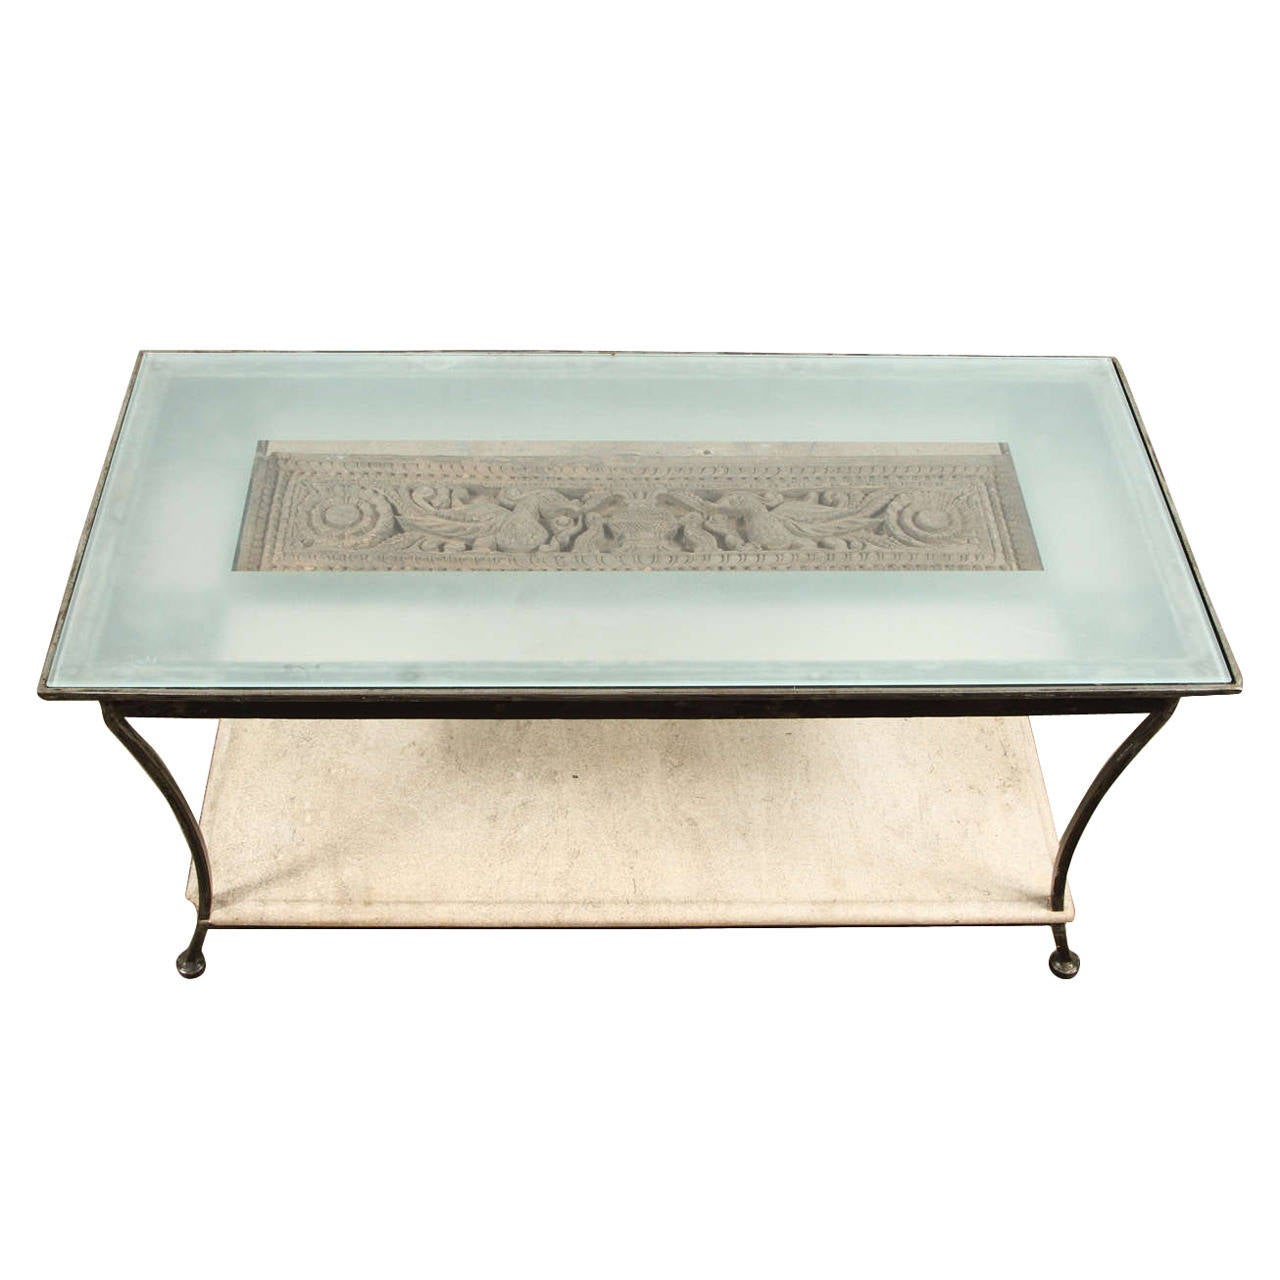 Chinese Relief Coffee Table: Asian Architectural Relief Made Into A Coffee Table For